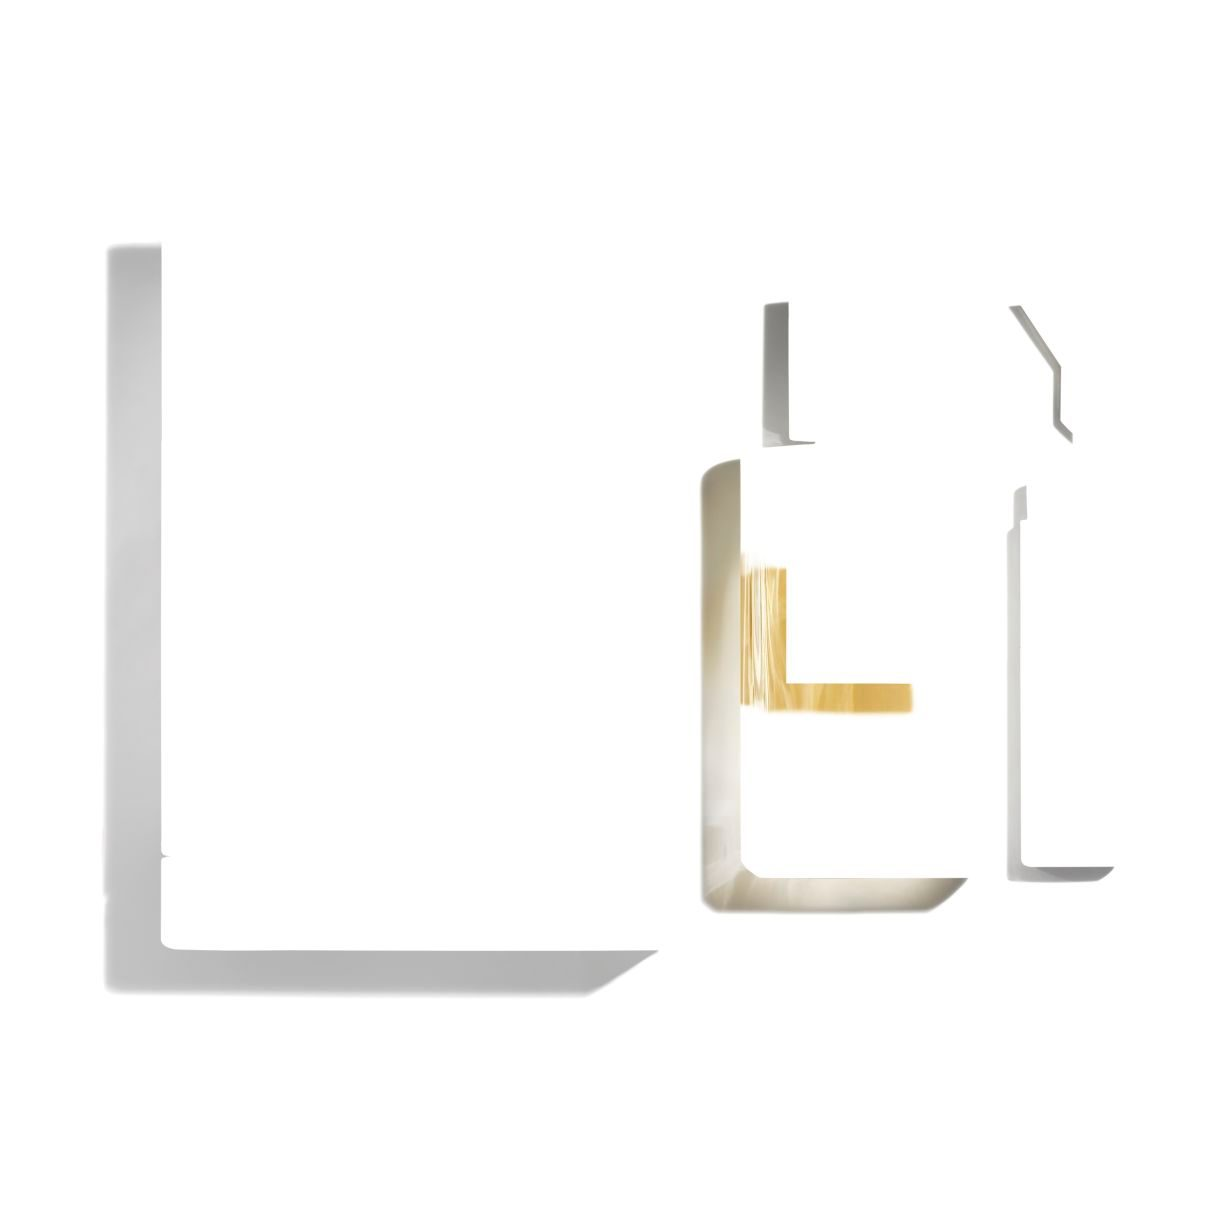 LES EXCLUSIFS DE CHANEL SYCOMORE - COFFRET: 400 ML BOTTLE AND REFILLABLE TWIST AND SPRAY